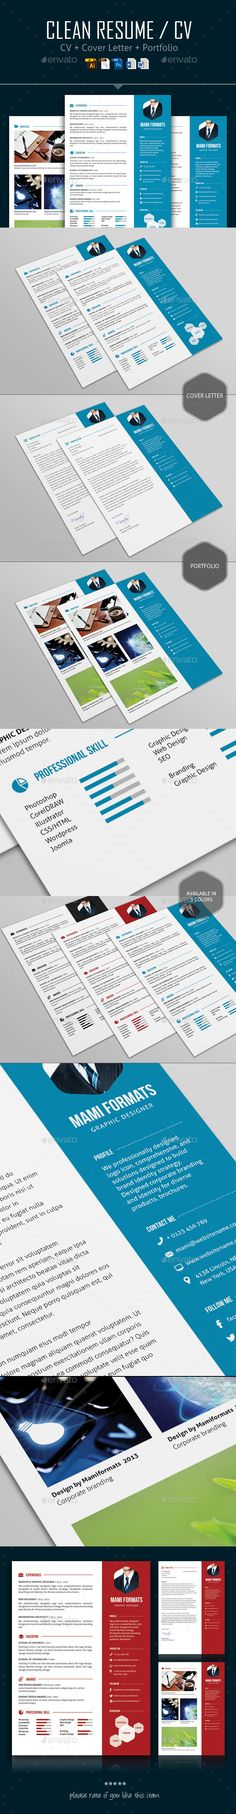 Resume Template Vector EPS, AI Illustrator, MS Word Resume - illustrator resume templates